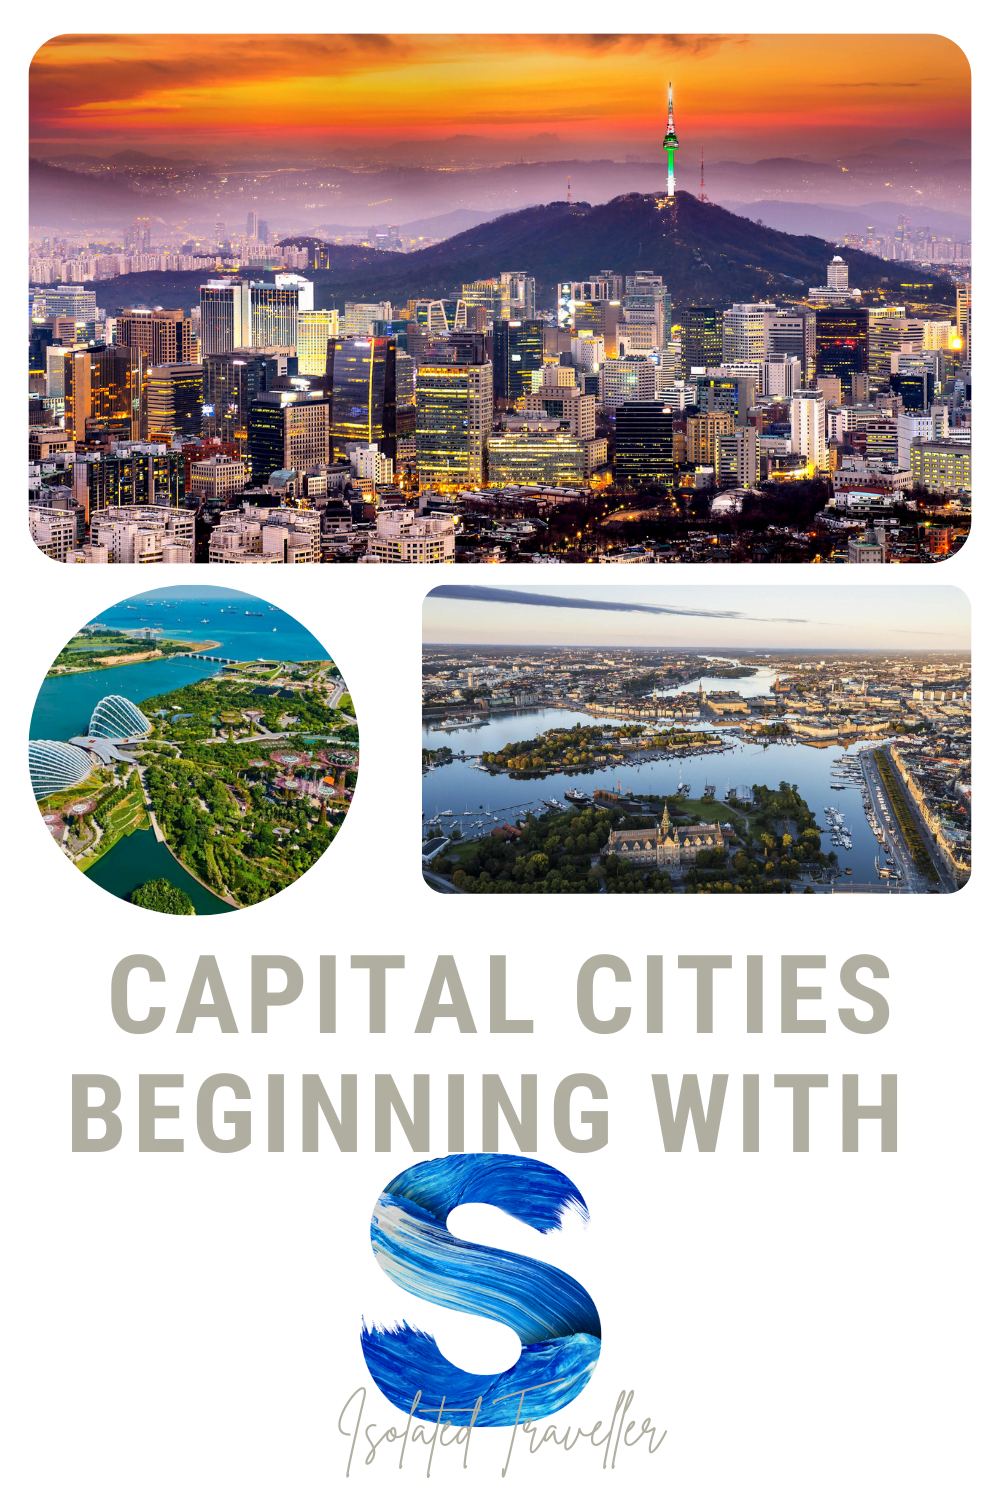 Capital Cities beginning with S